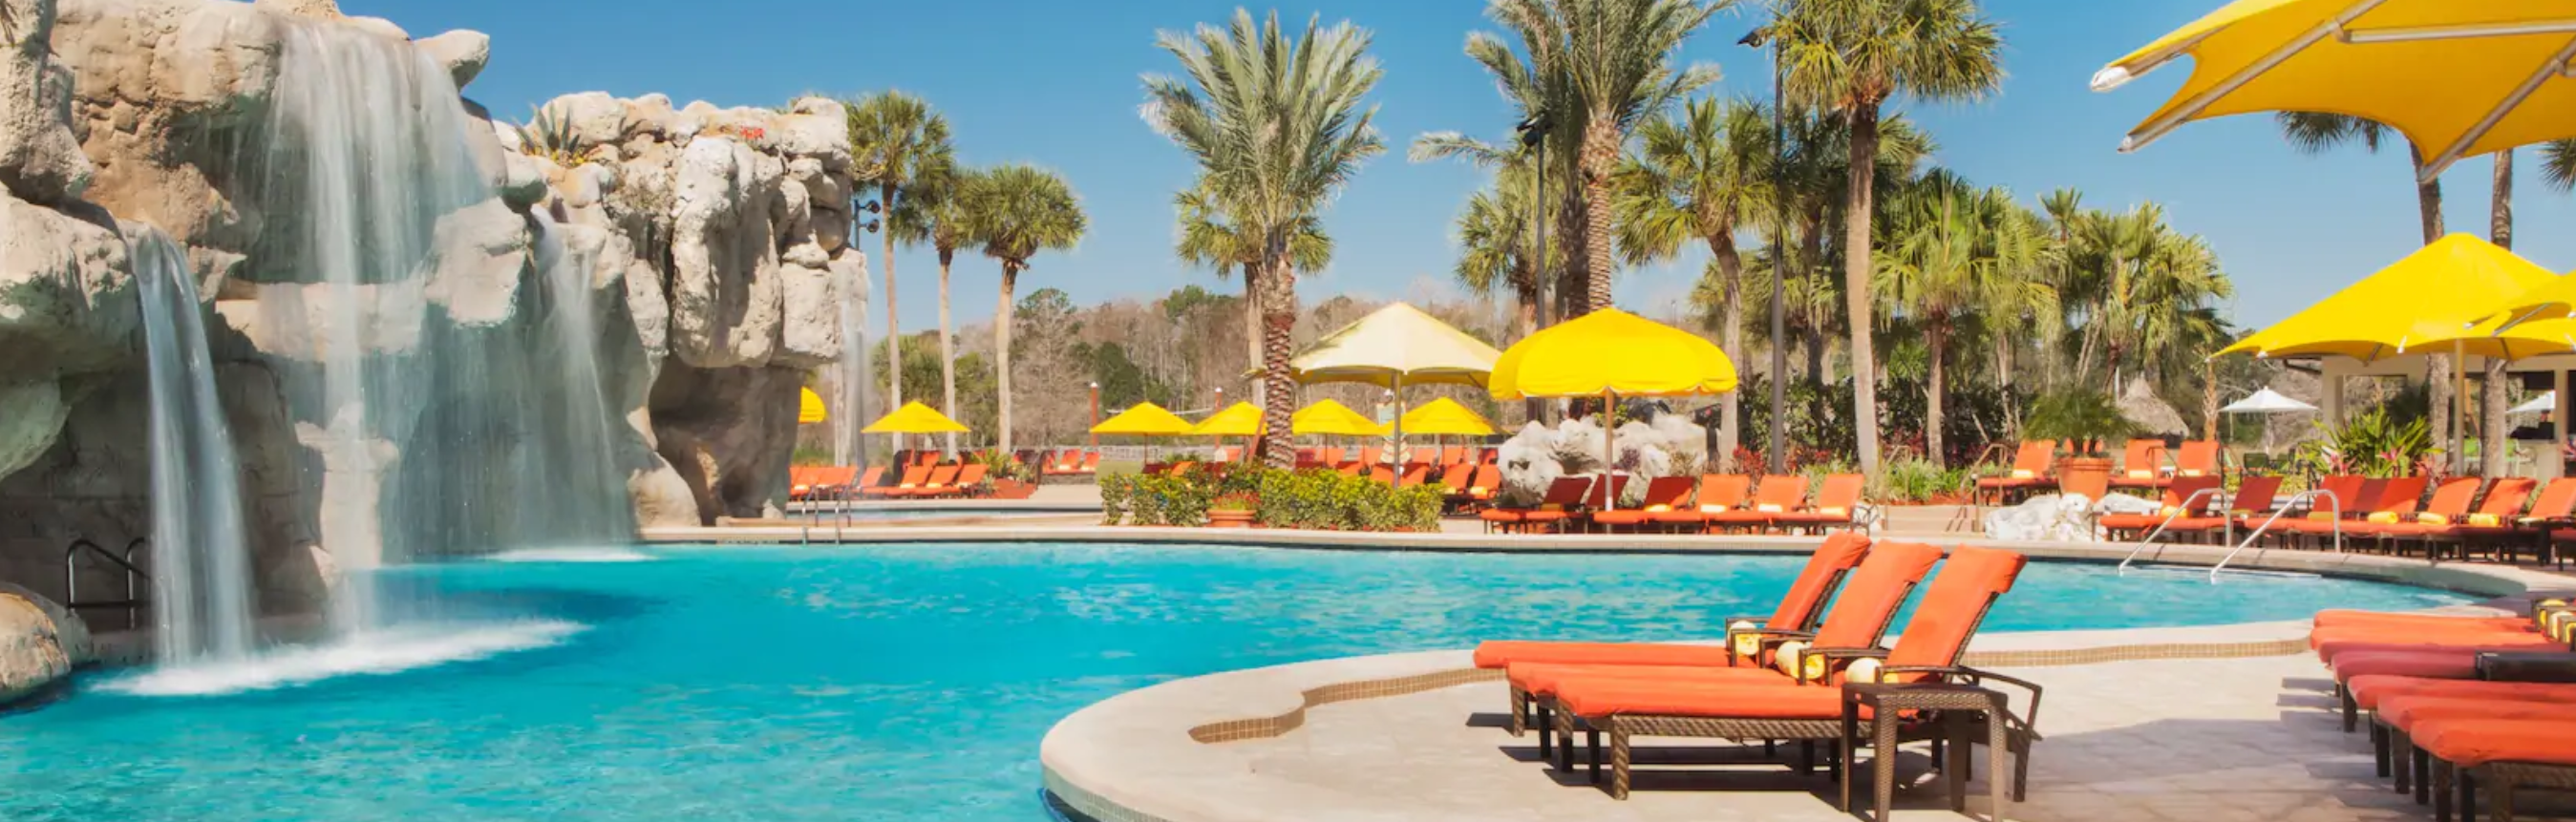 The Best Places to Stay in Orlando, Florida [Disney Vacations]